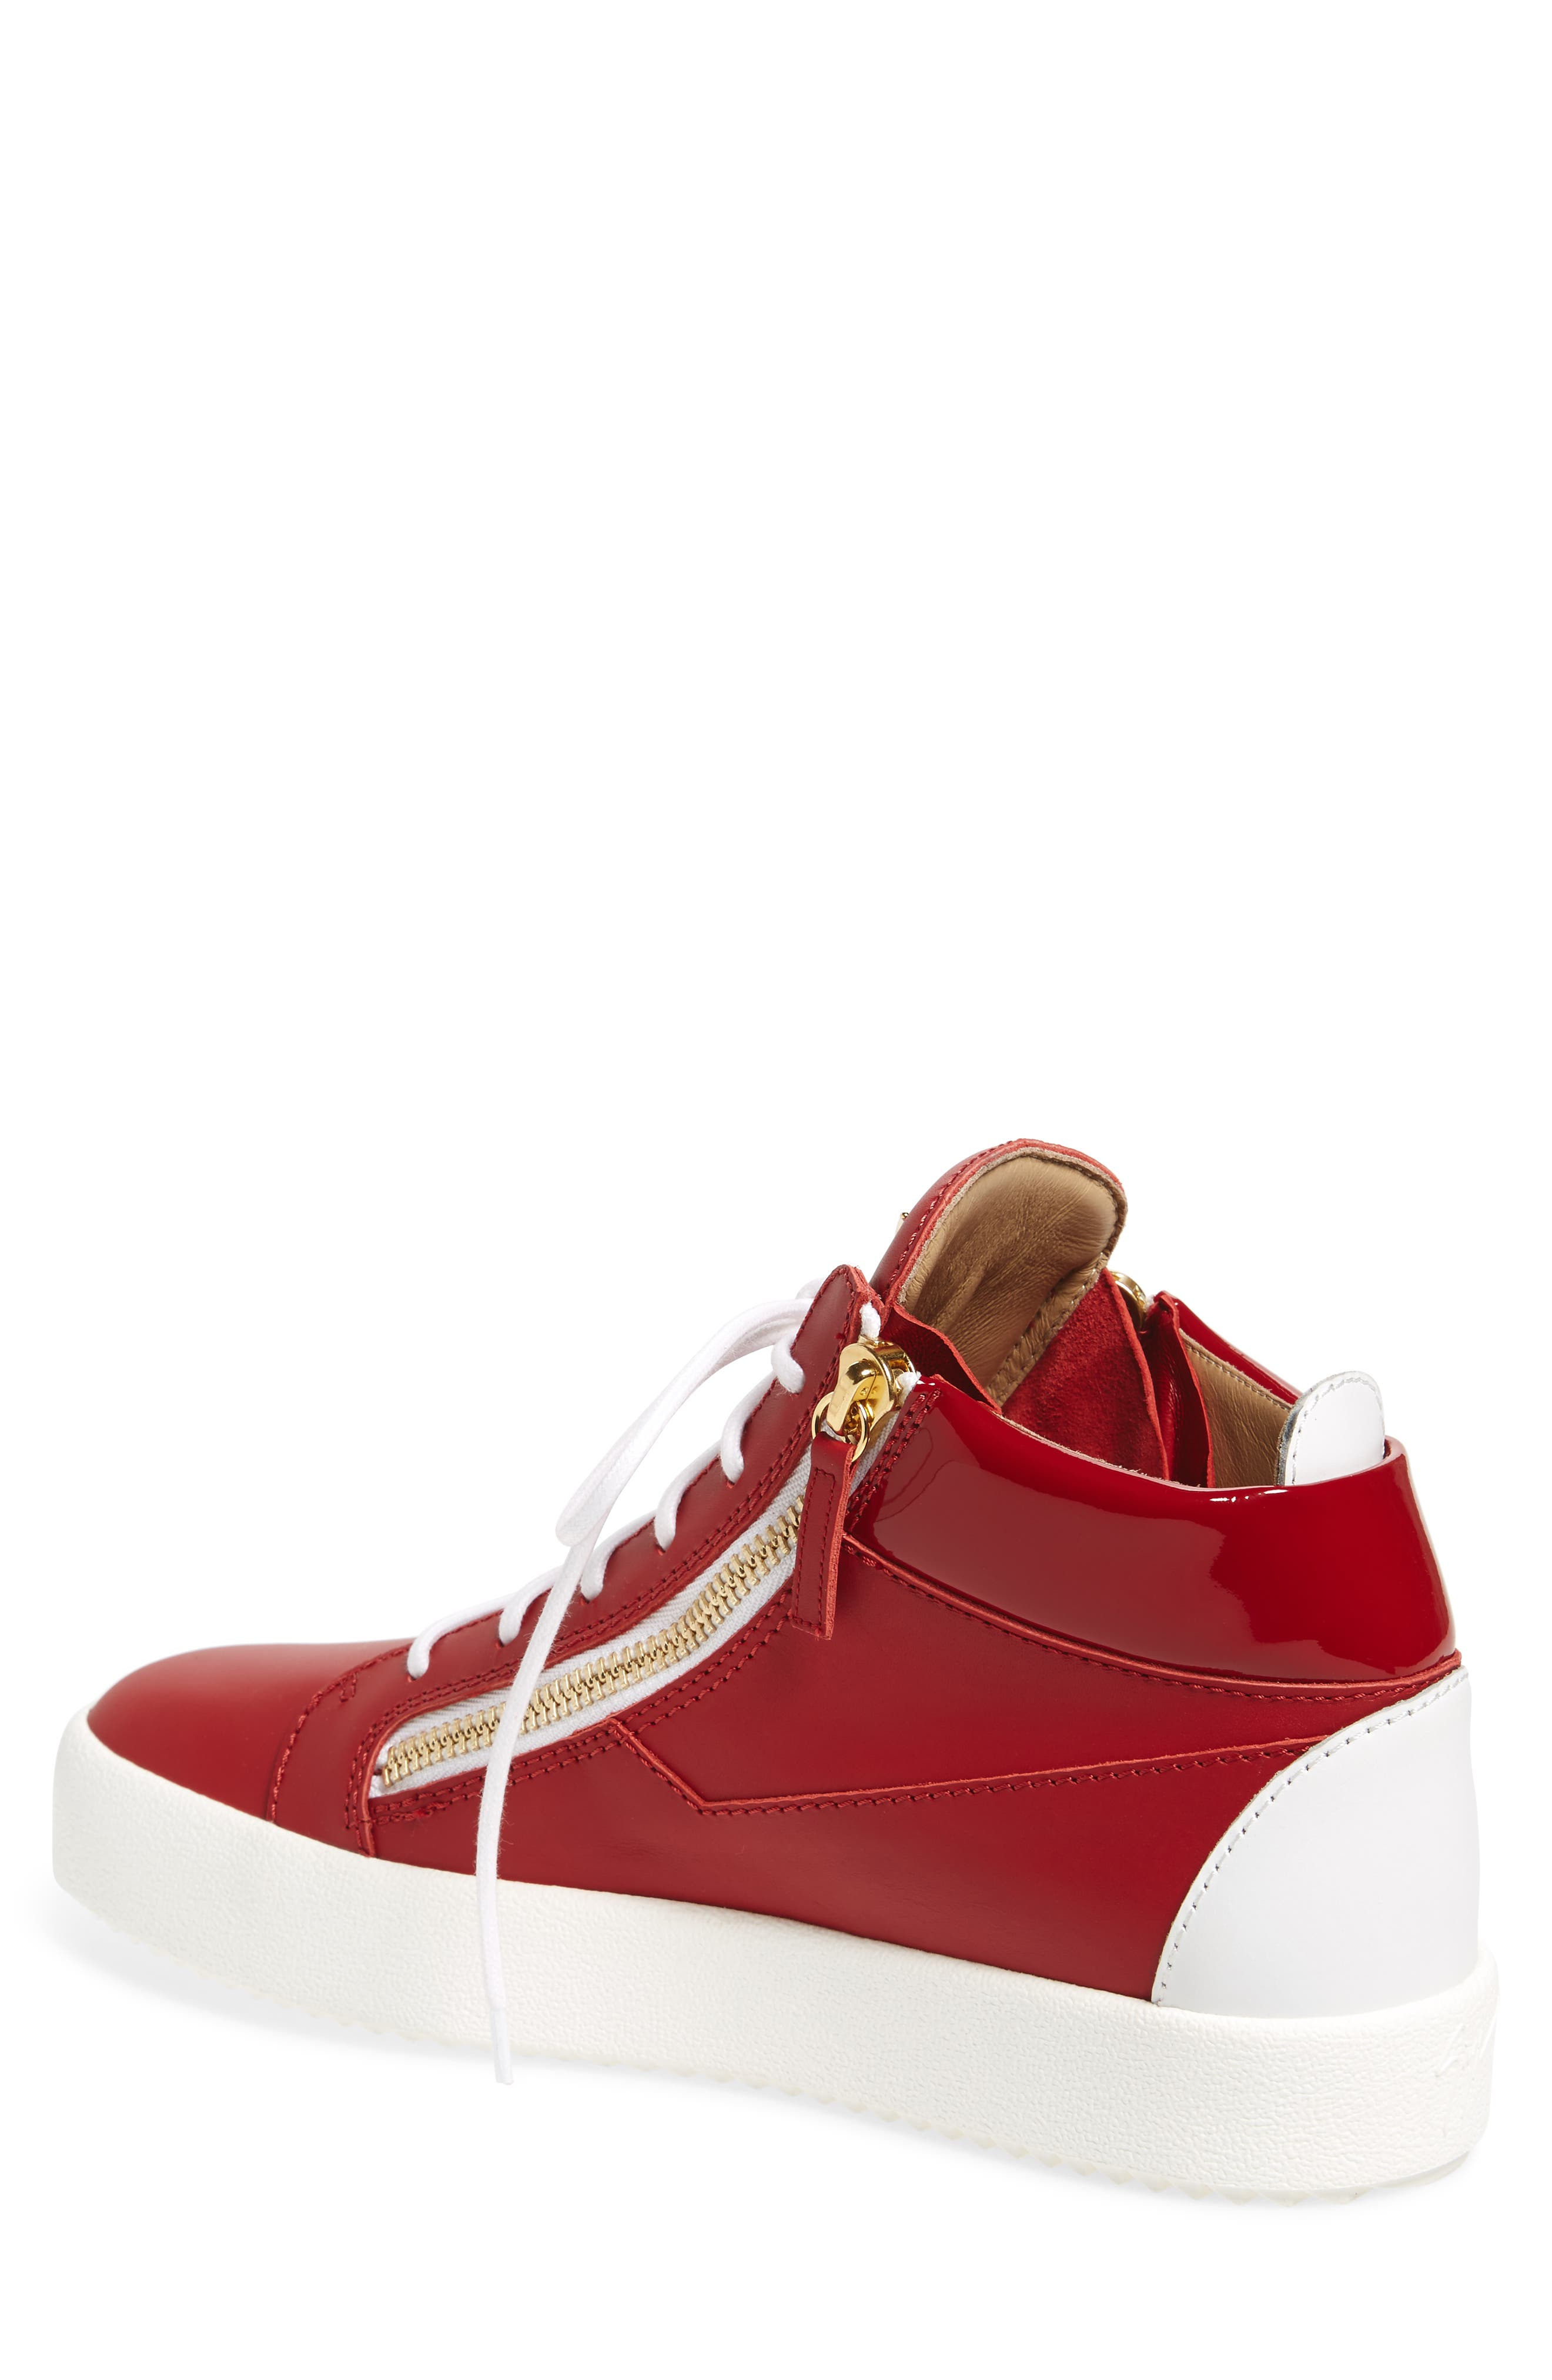 Double Zipper Mid Top Sneaker,                             Alternate thumbnail 2, color,                             Red W/ White Leather